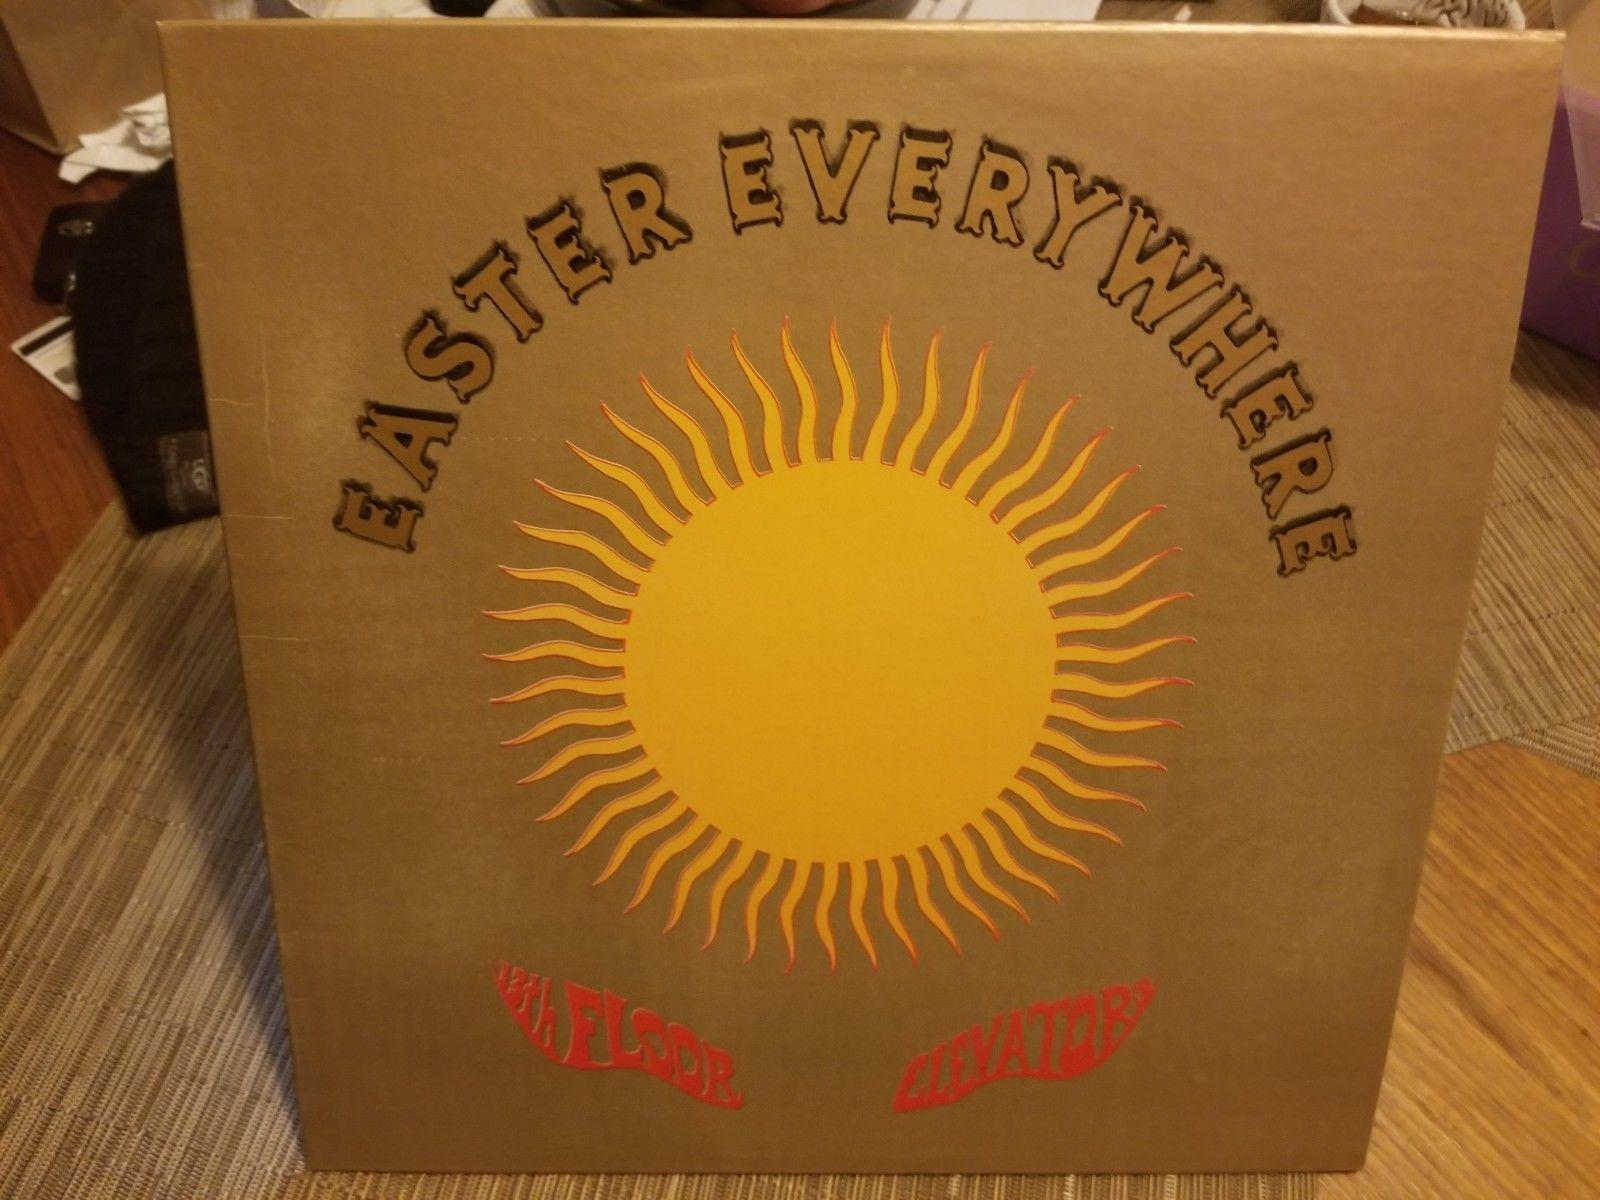 13th Floor Elevators–Easter Everywhere (LP) original stereo, archival condition